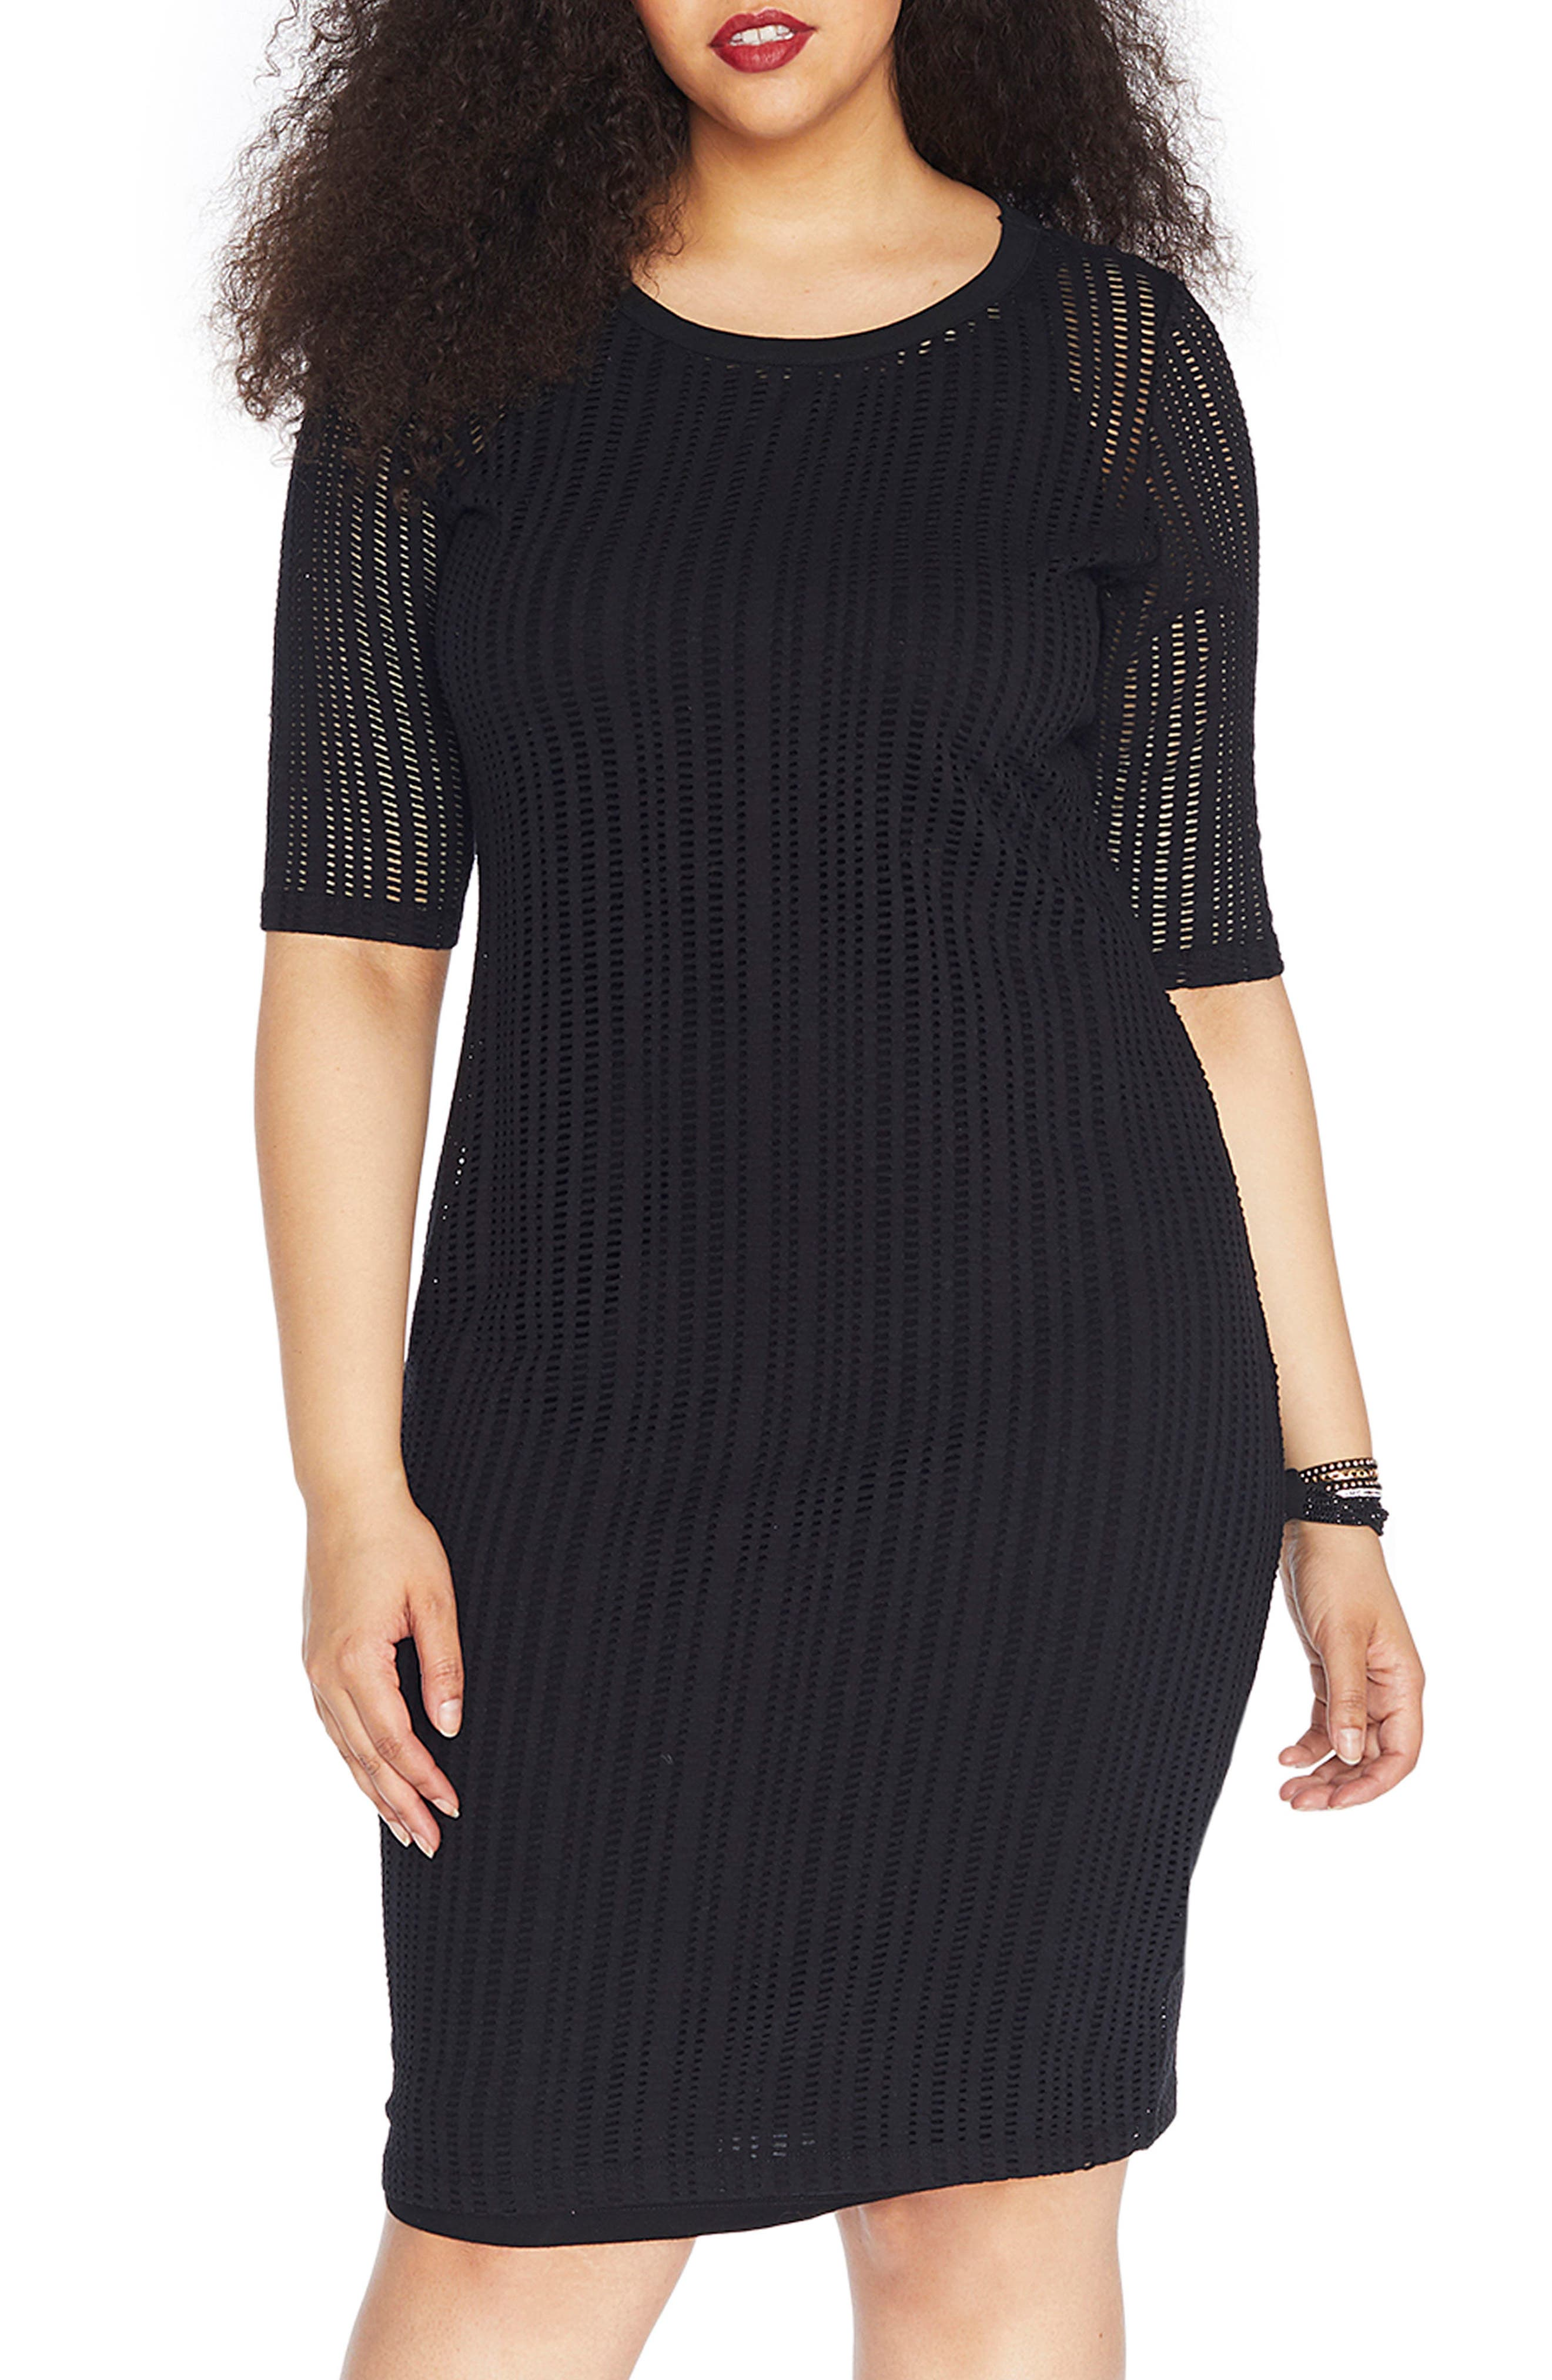 Main Image - REBEL WILSON X ANGELS Stretch Jacquard Sheath Dress (Plus Size)